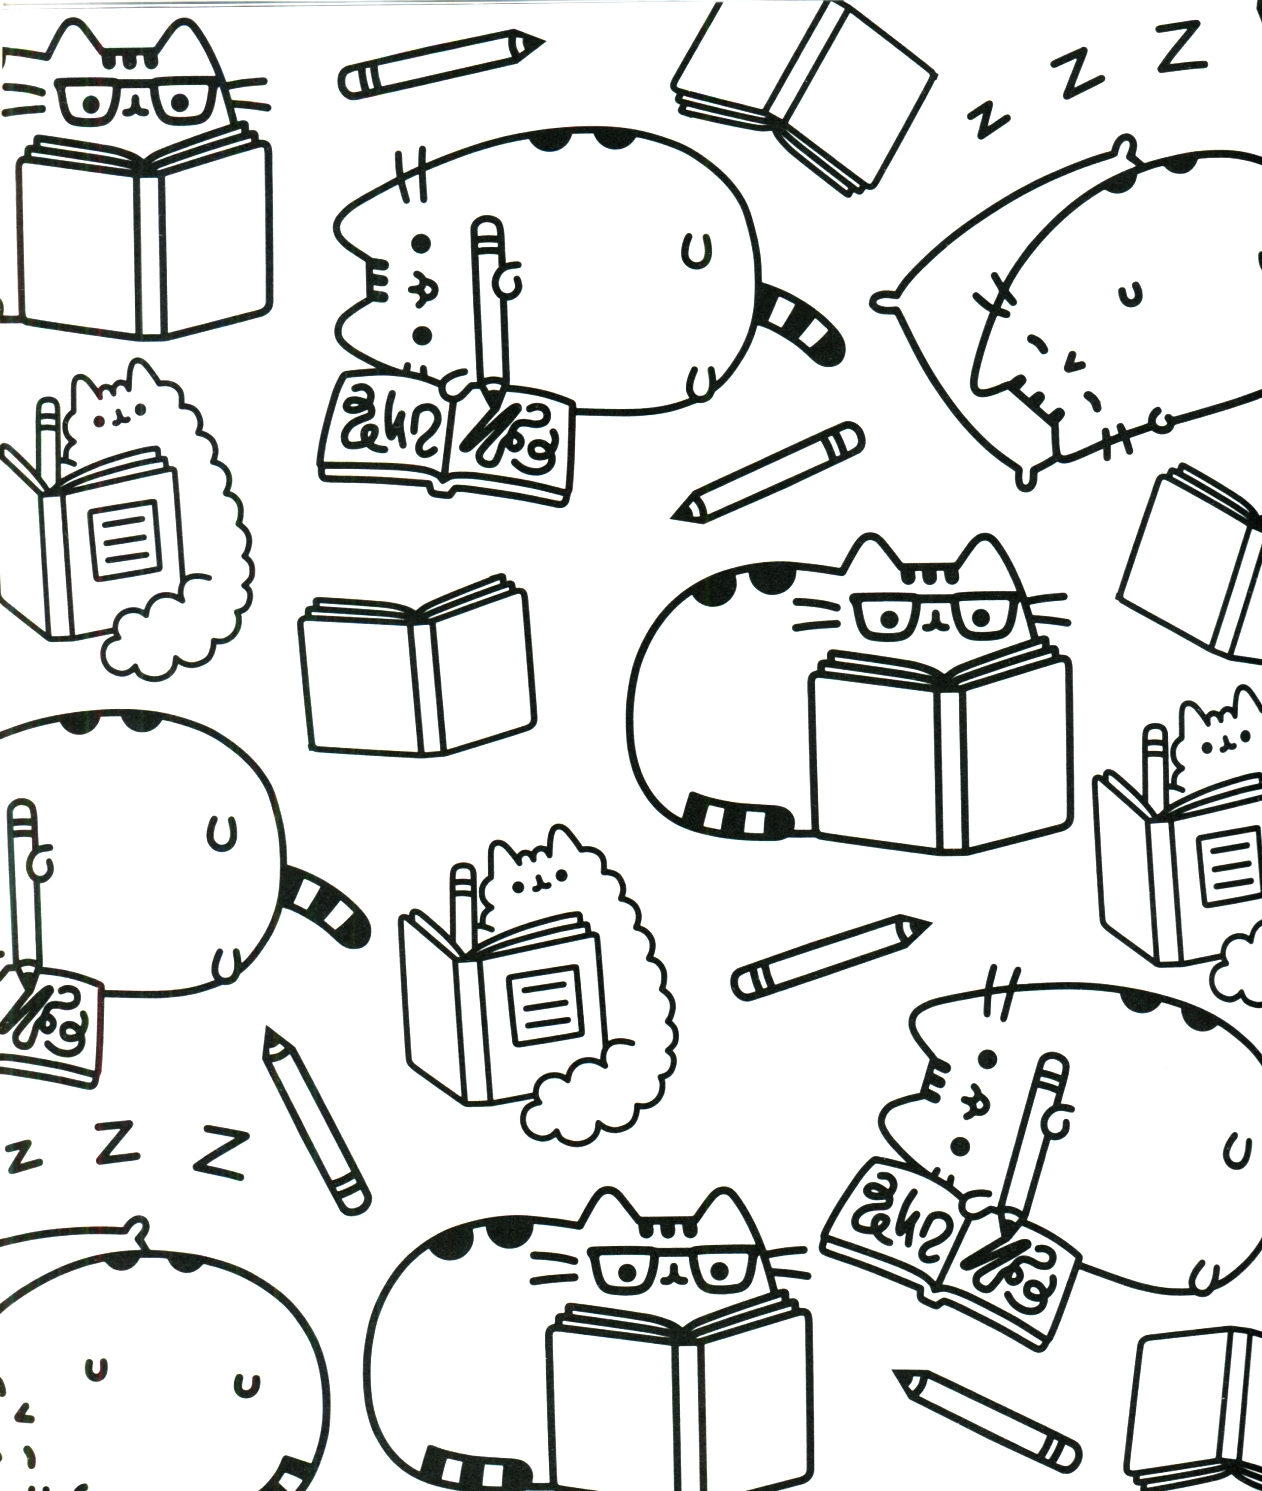 graphic about Pusheen Coloring Pages Printable named Pusheen Coloring Internet pages In direction of Print at  No cost